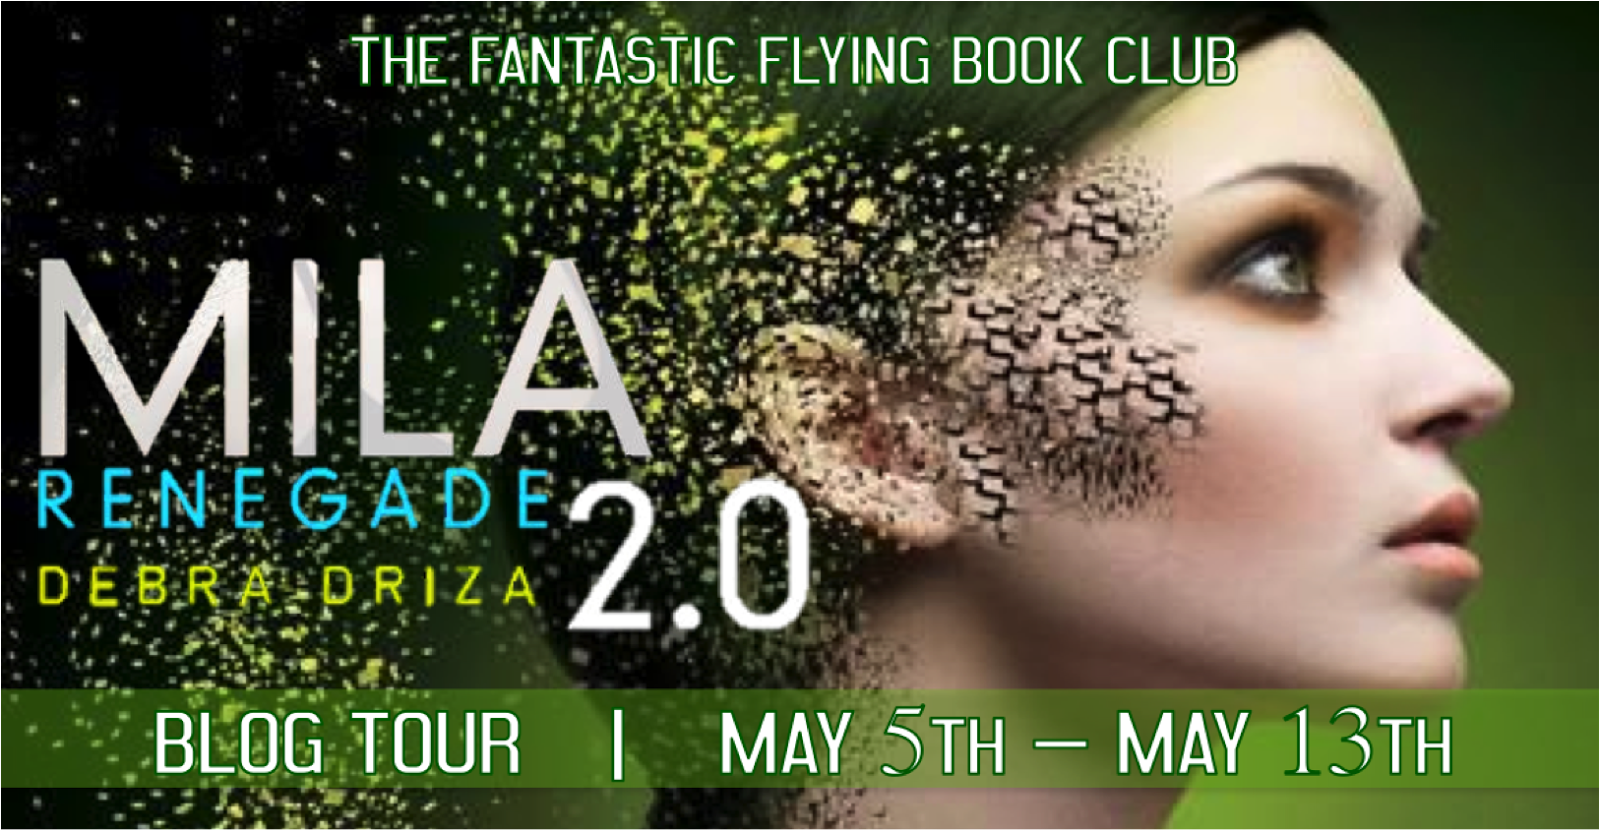 Renegade (MILA 2.0 #2) by Debra Driza Blog Tour with Giveaway!